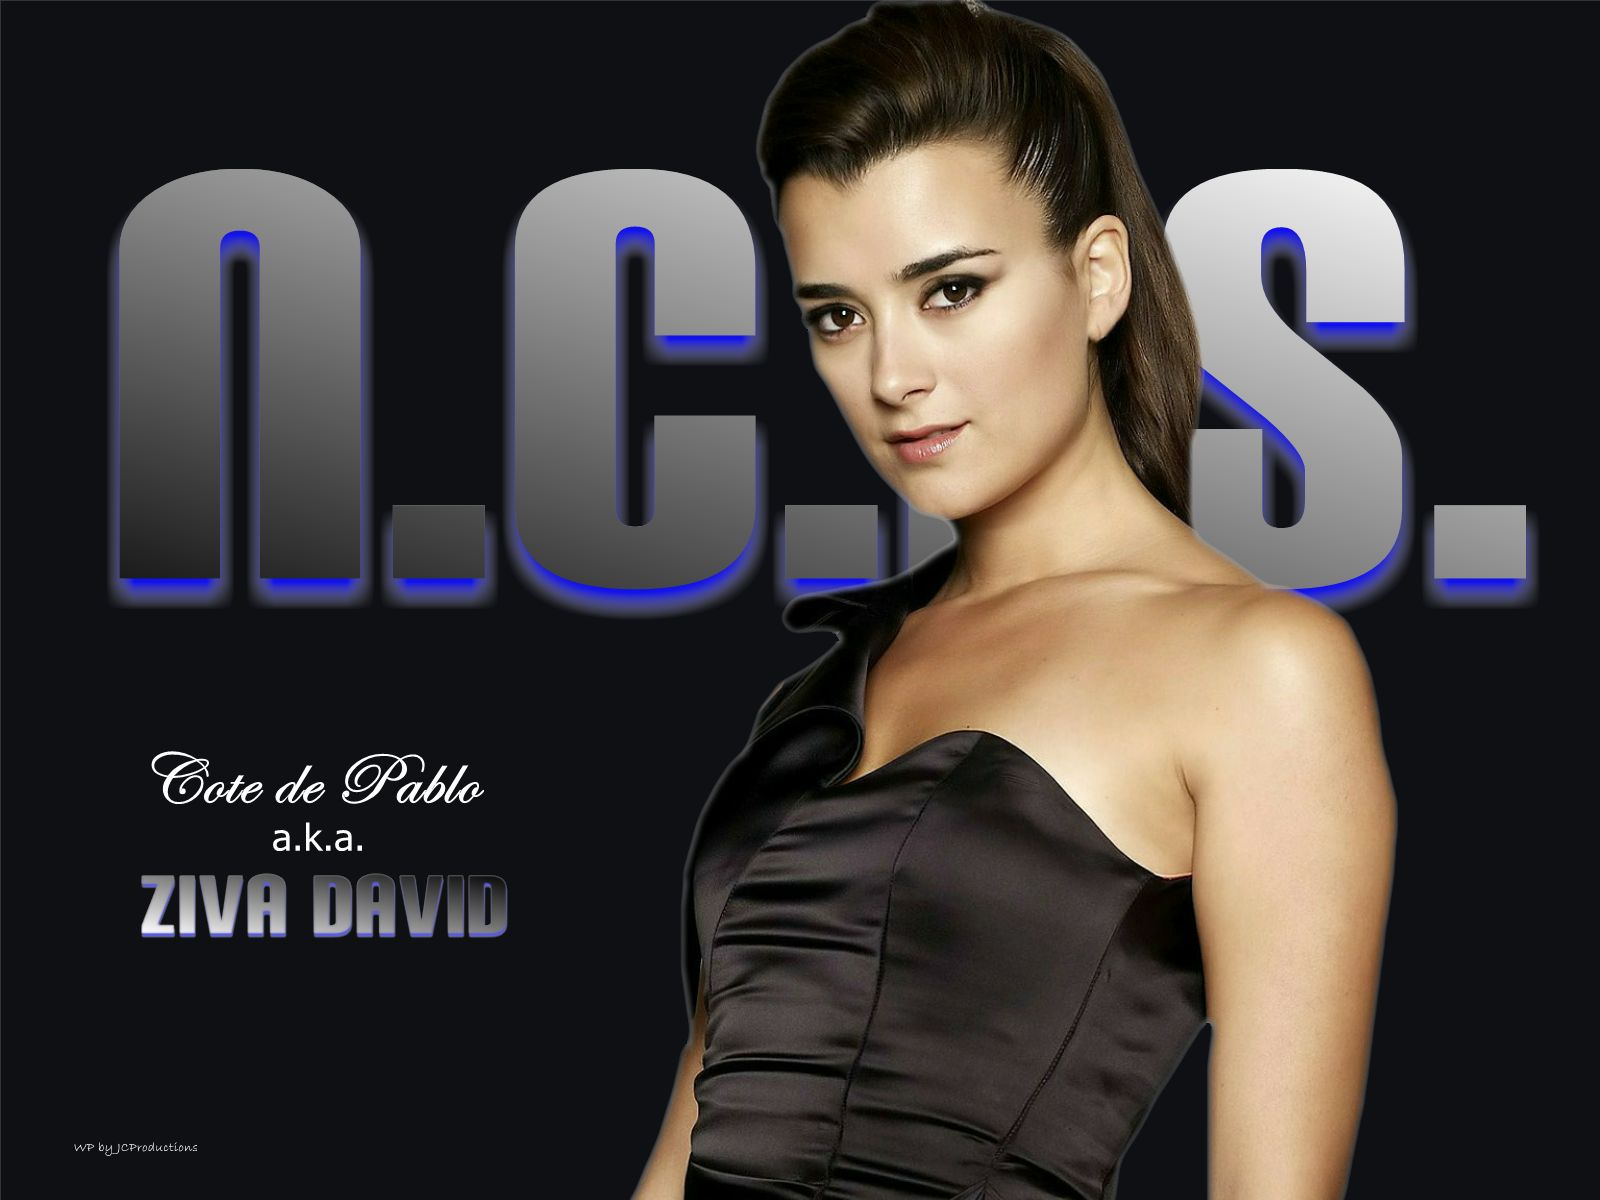 De Pablo Ziva David Gibbs Girls Sey Cote Wallpaper